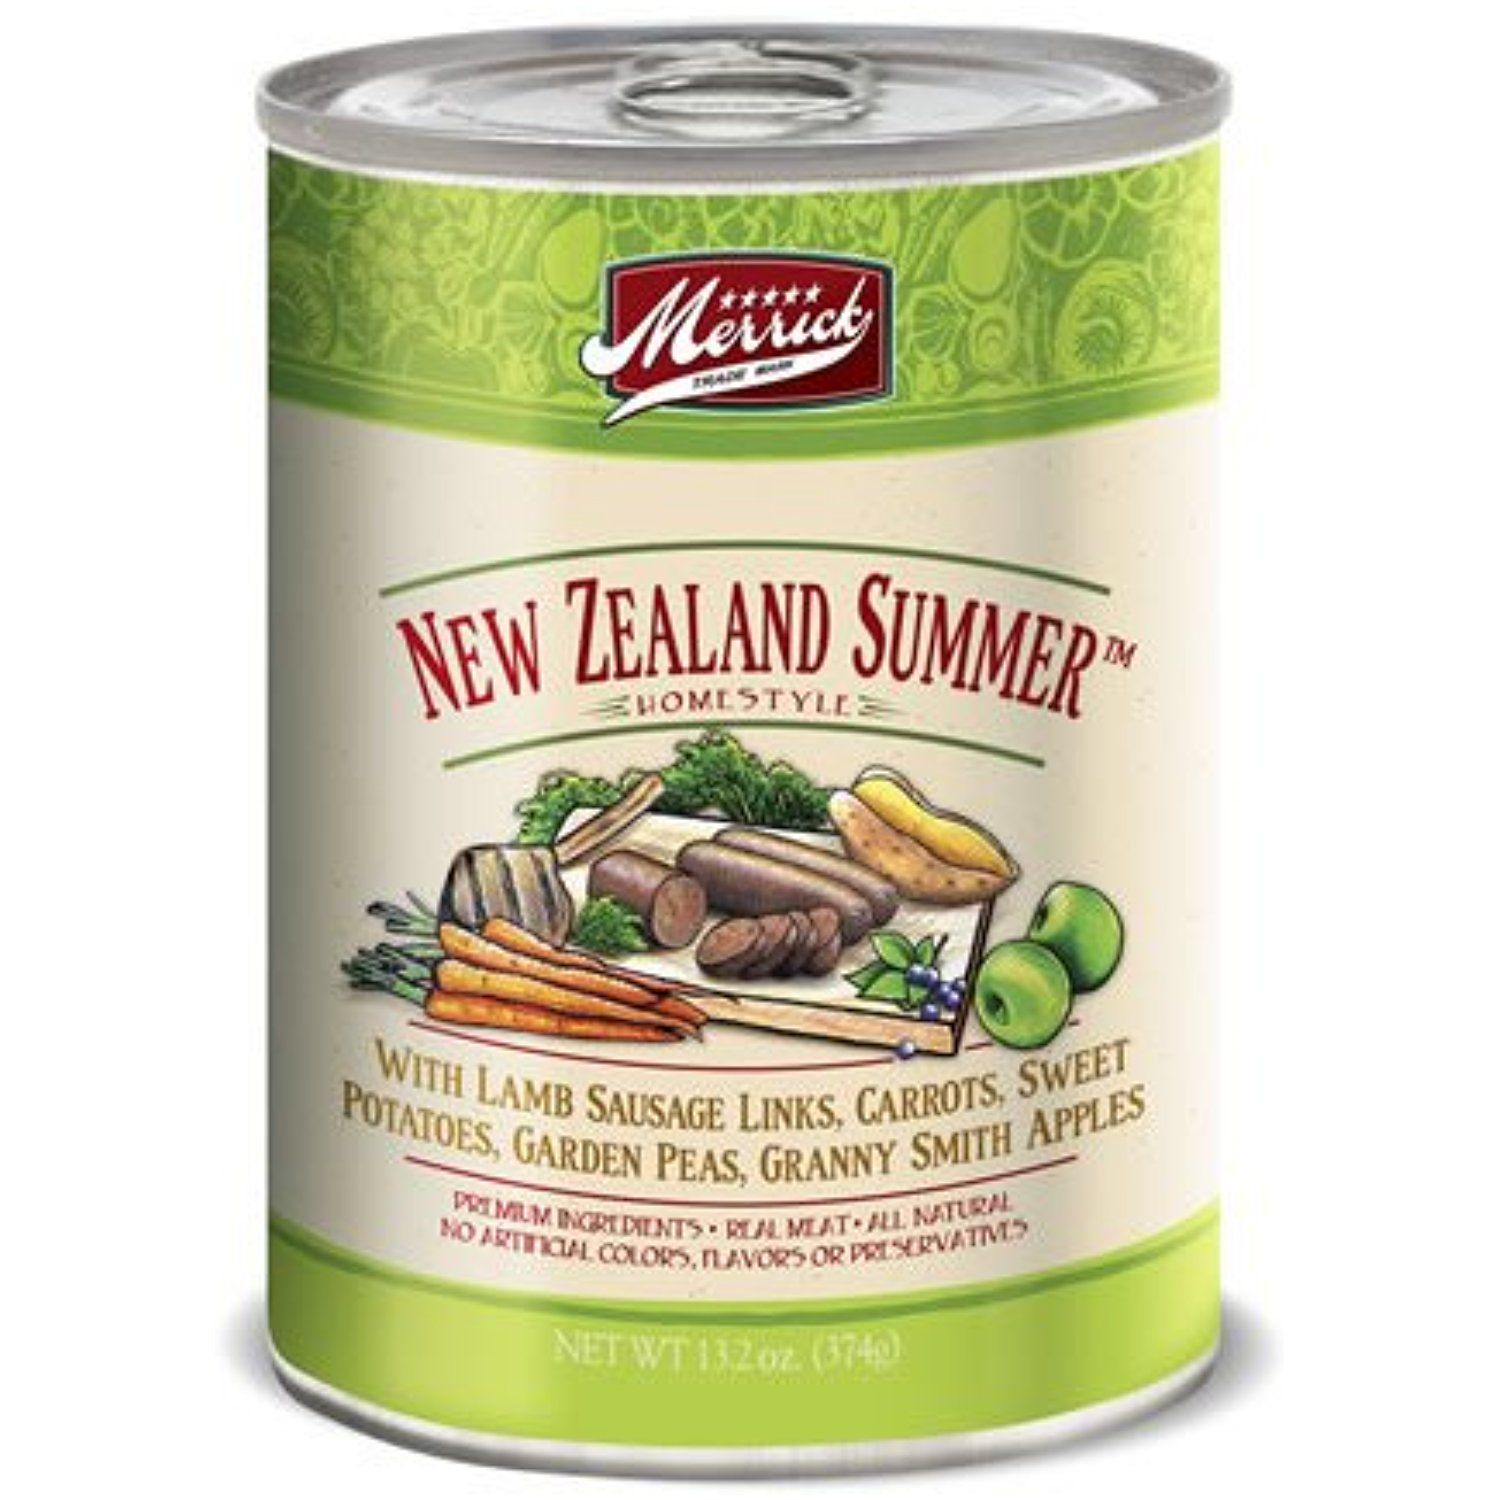 Merrick New Zealand Summer Canned Dog Food You Can Check Out